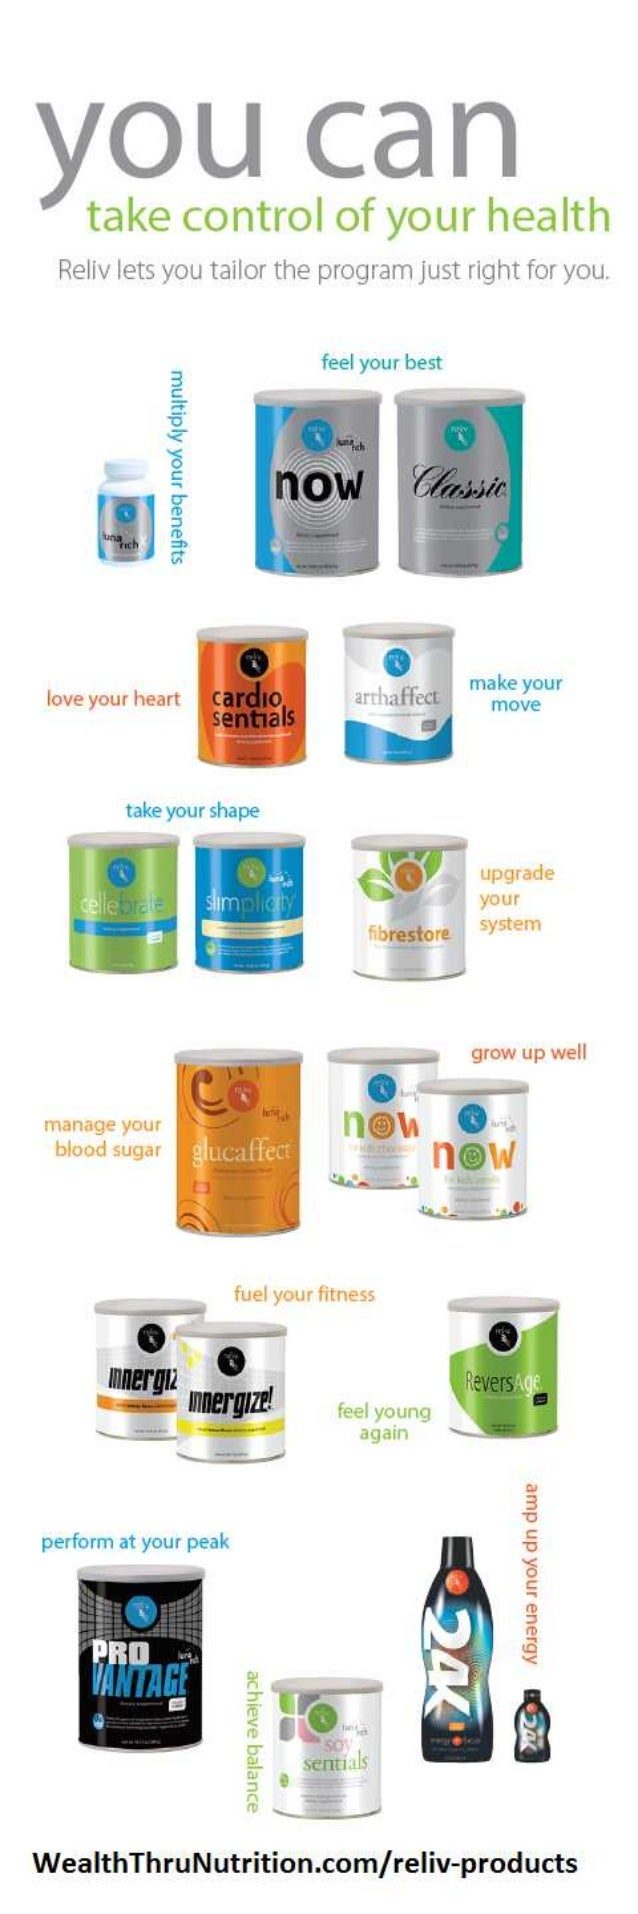 Take control of your health with Reliv nutritional products!